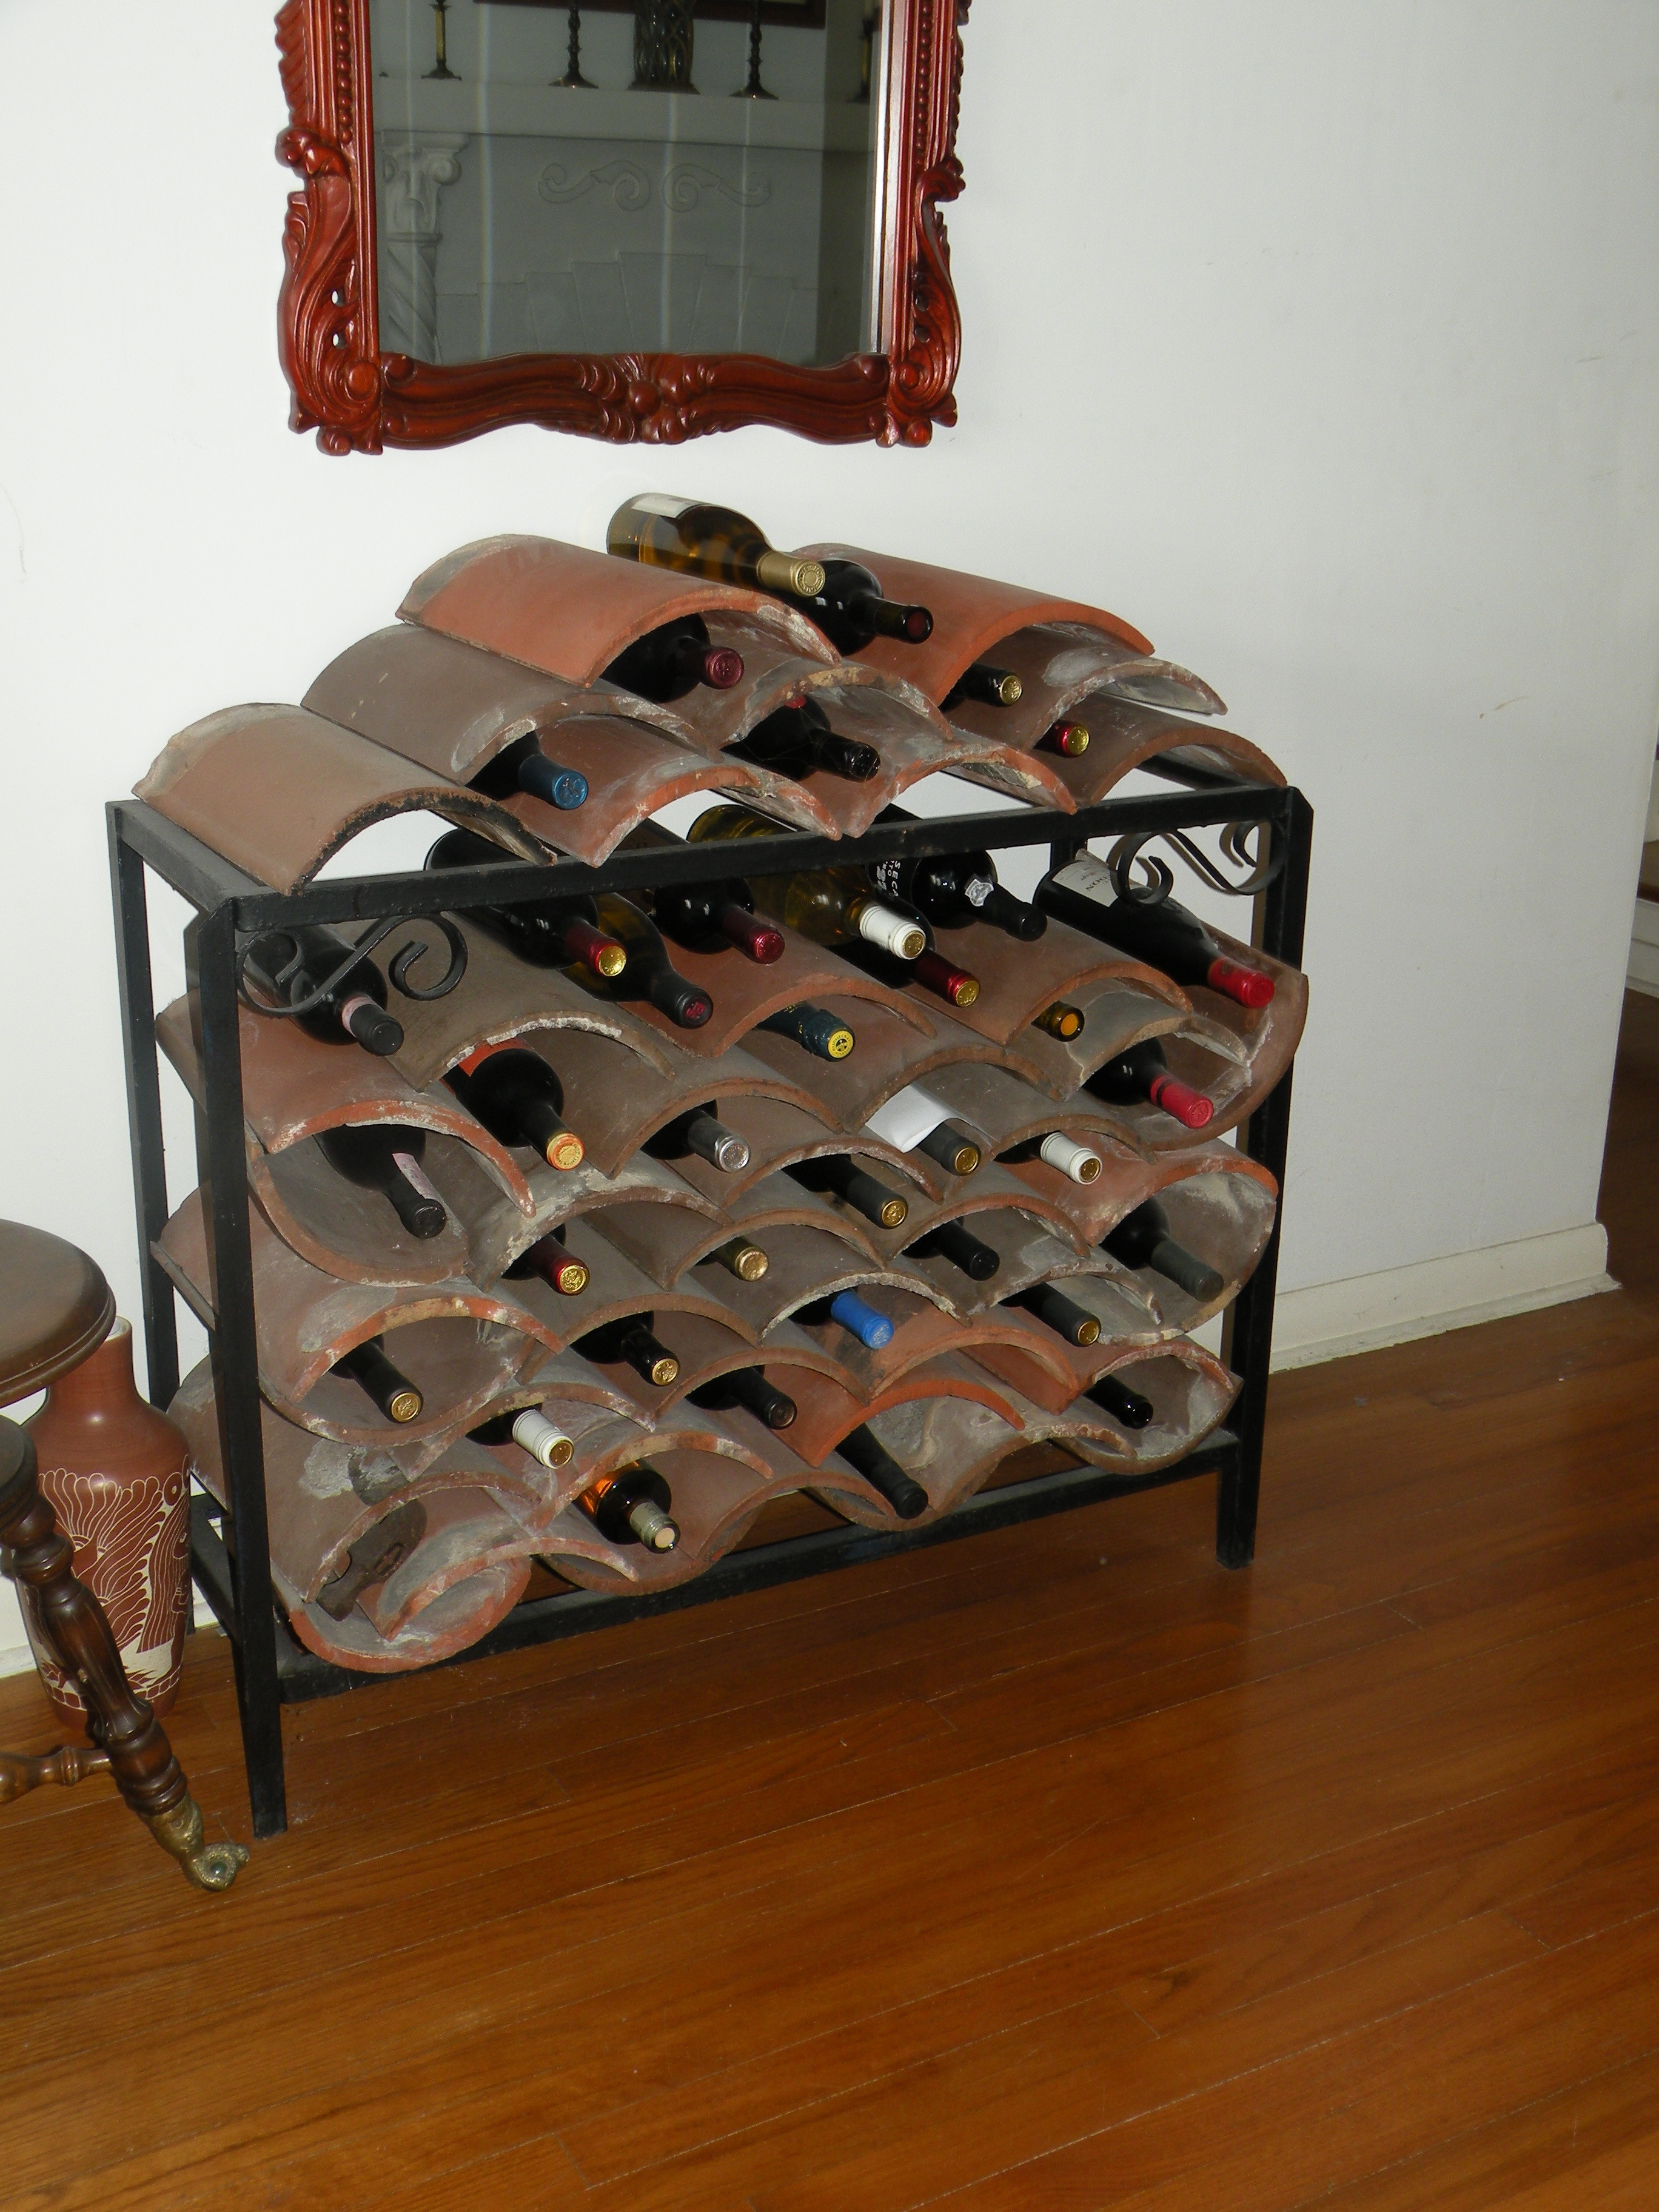 Best ideas about Wine Rack DIY . Save or Pin DIY Wine Rack Now.